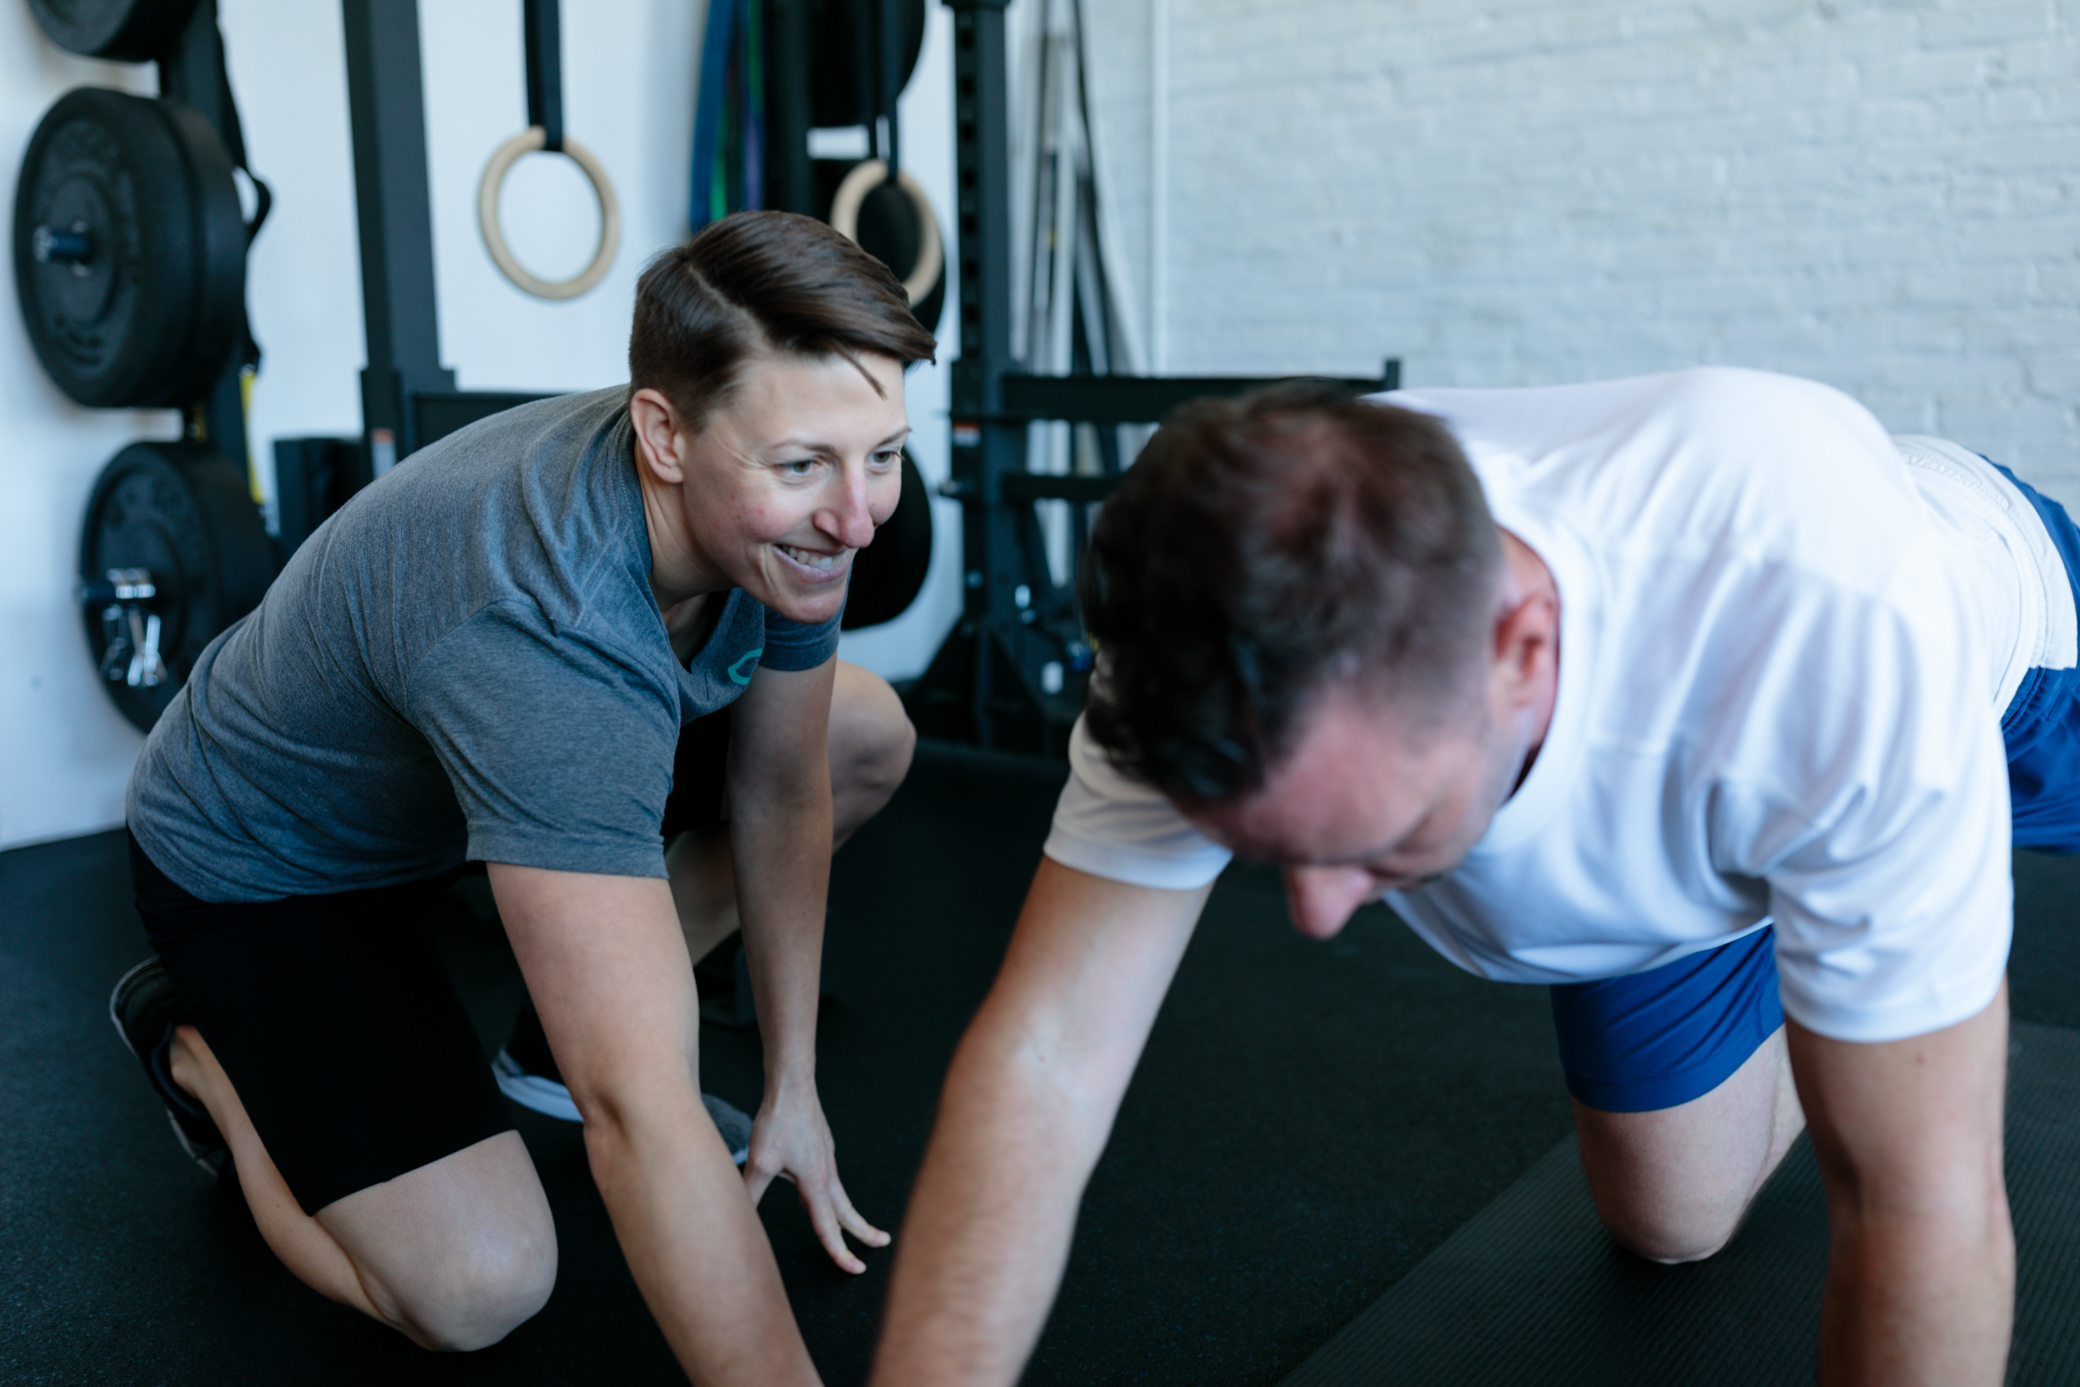 1:1 Personal Training - Customized 45-minute workouts created by your NASM certified Personal Trainer. Your trainer will optimize your results while supporting and encouraging you along the way to create results.